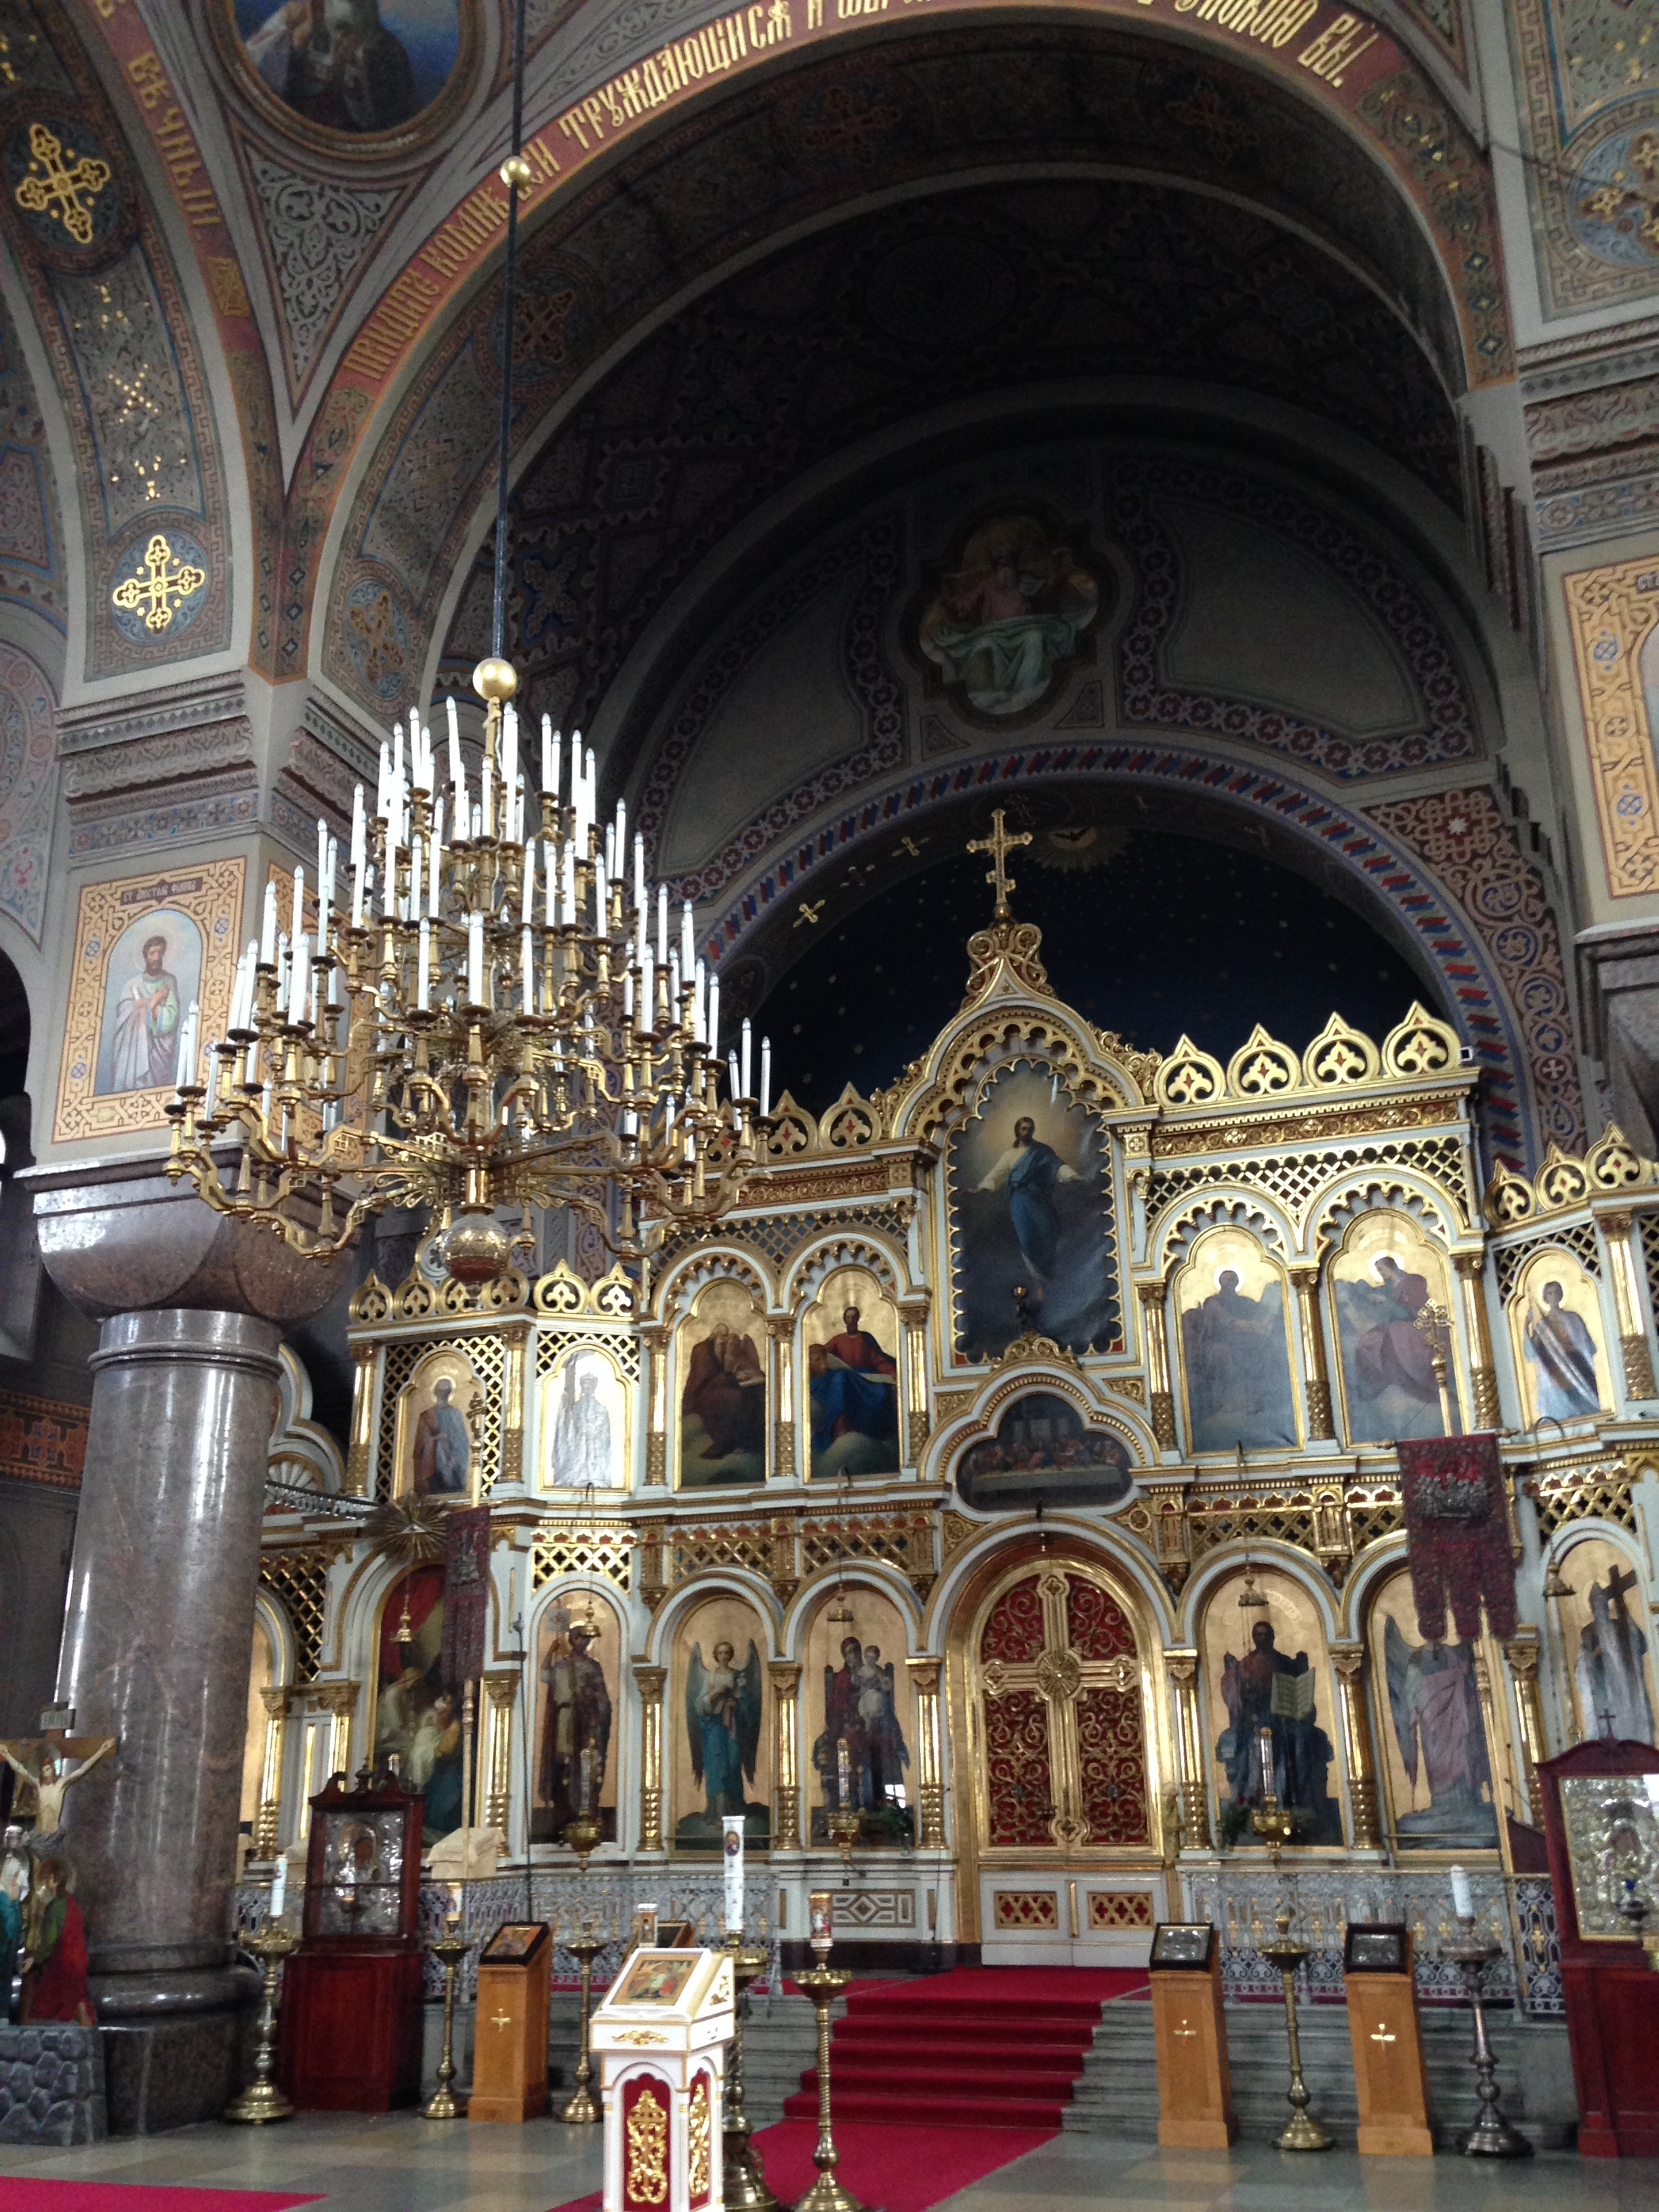 The inside of the Upenski Cathedral.